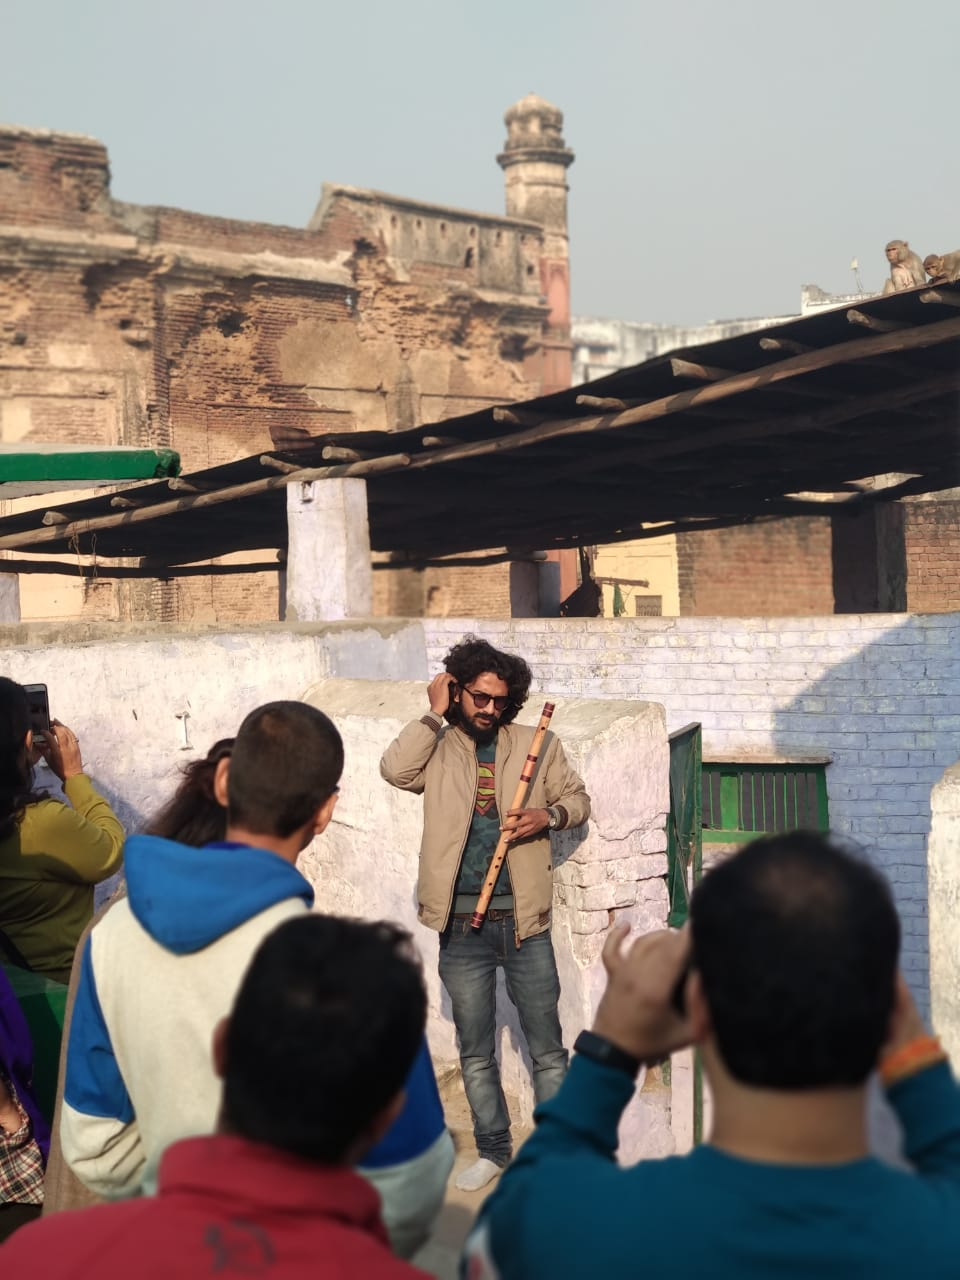 Anal Jha during one of his heritage walks through Agra